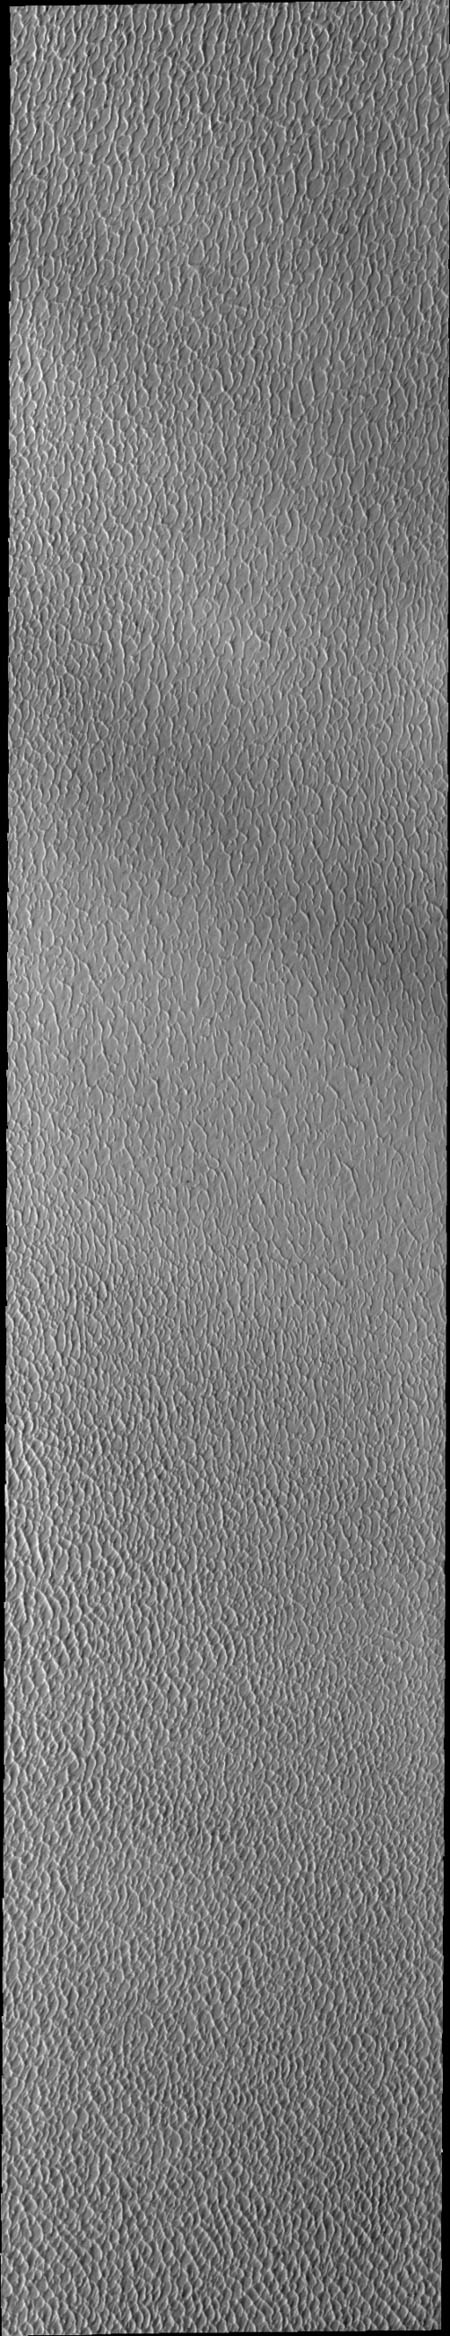 This image of Olympia Undae was collected during north polar spring. The crests of the dunes and other surfaces are light colored, indicative of a frost covering. This image was captured by NASA's 2001 Mars Odyssey spacecraft.